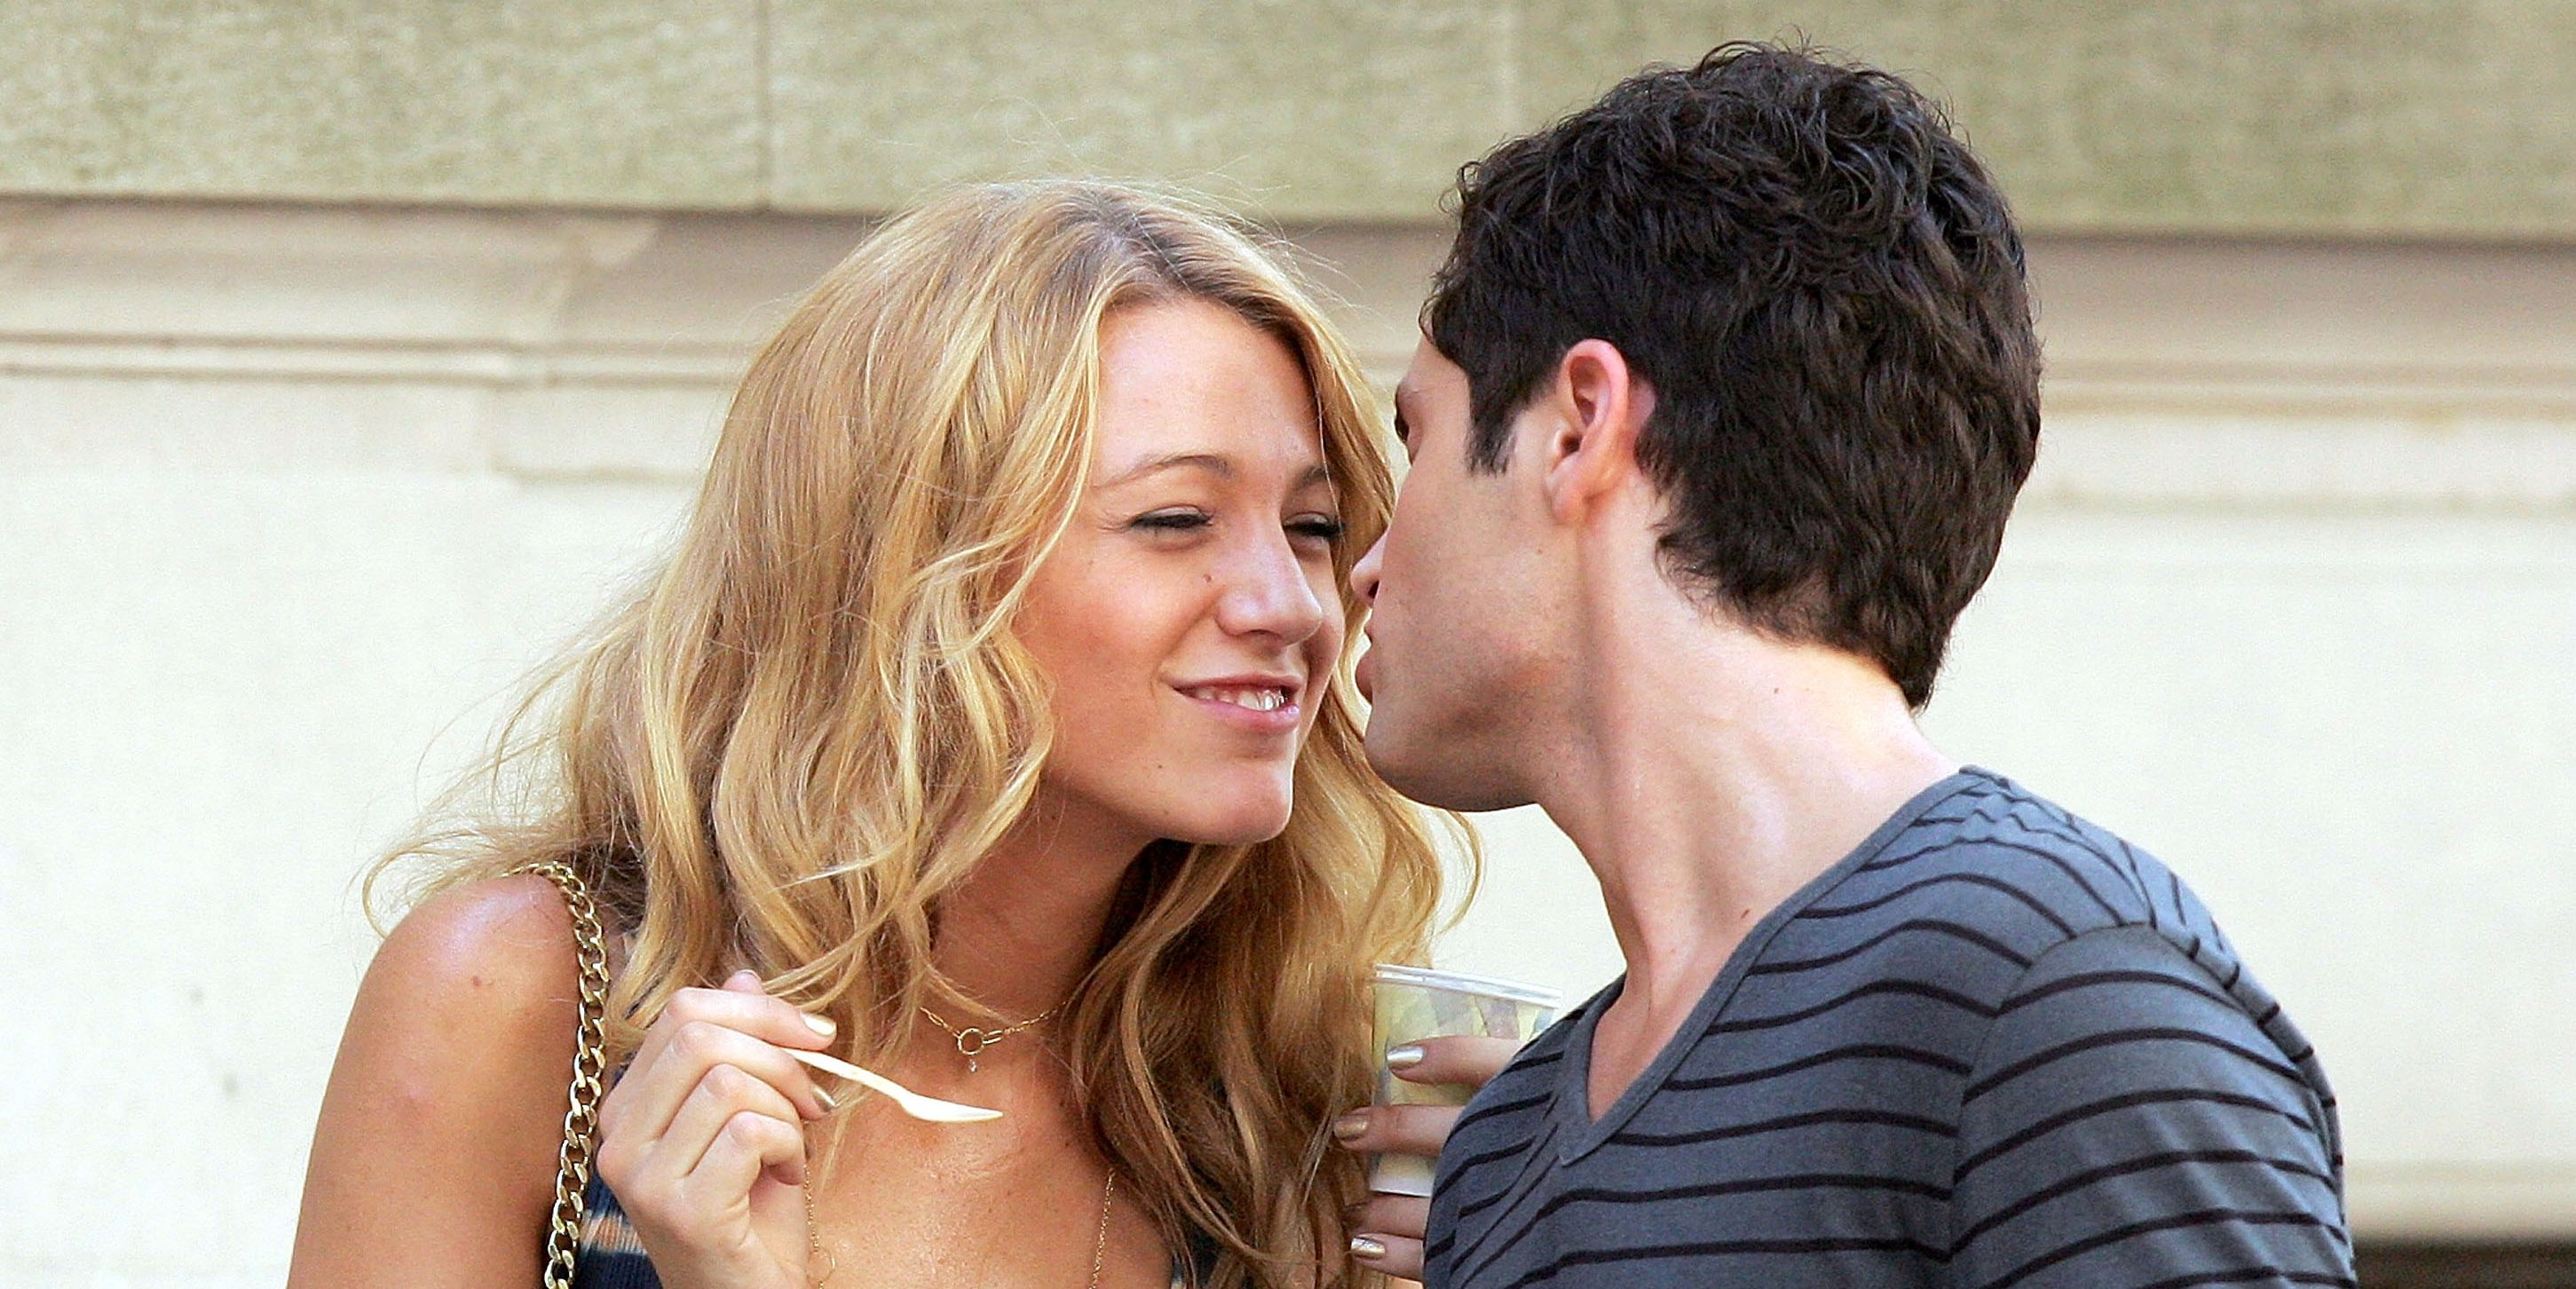 Real-life couple Blake Lively and Penn Badgley shooting Gossip Girl